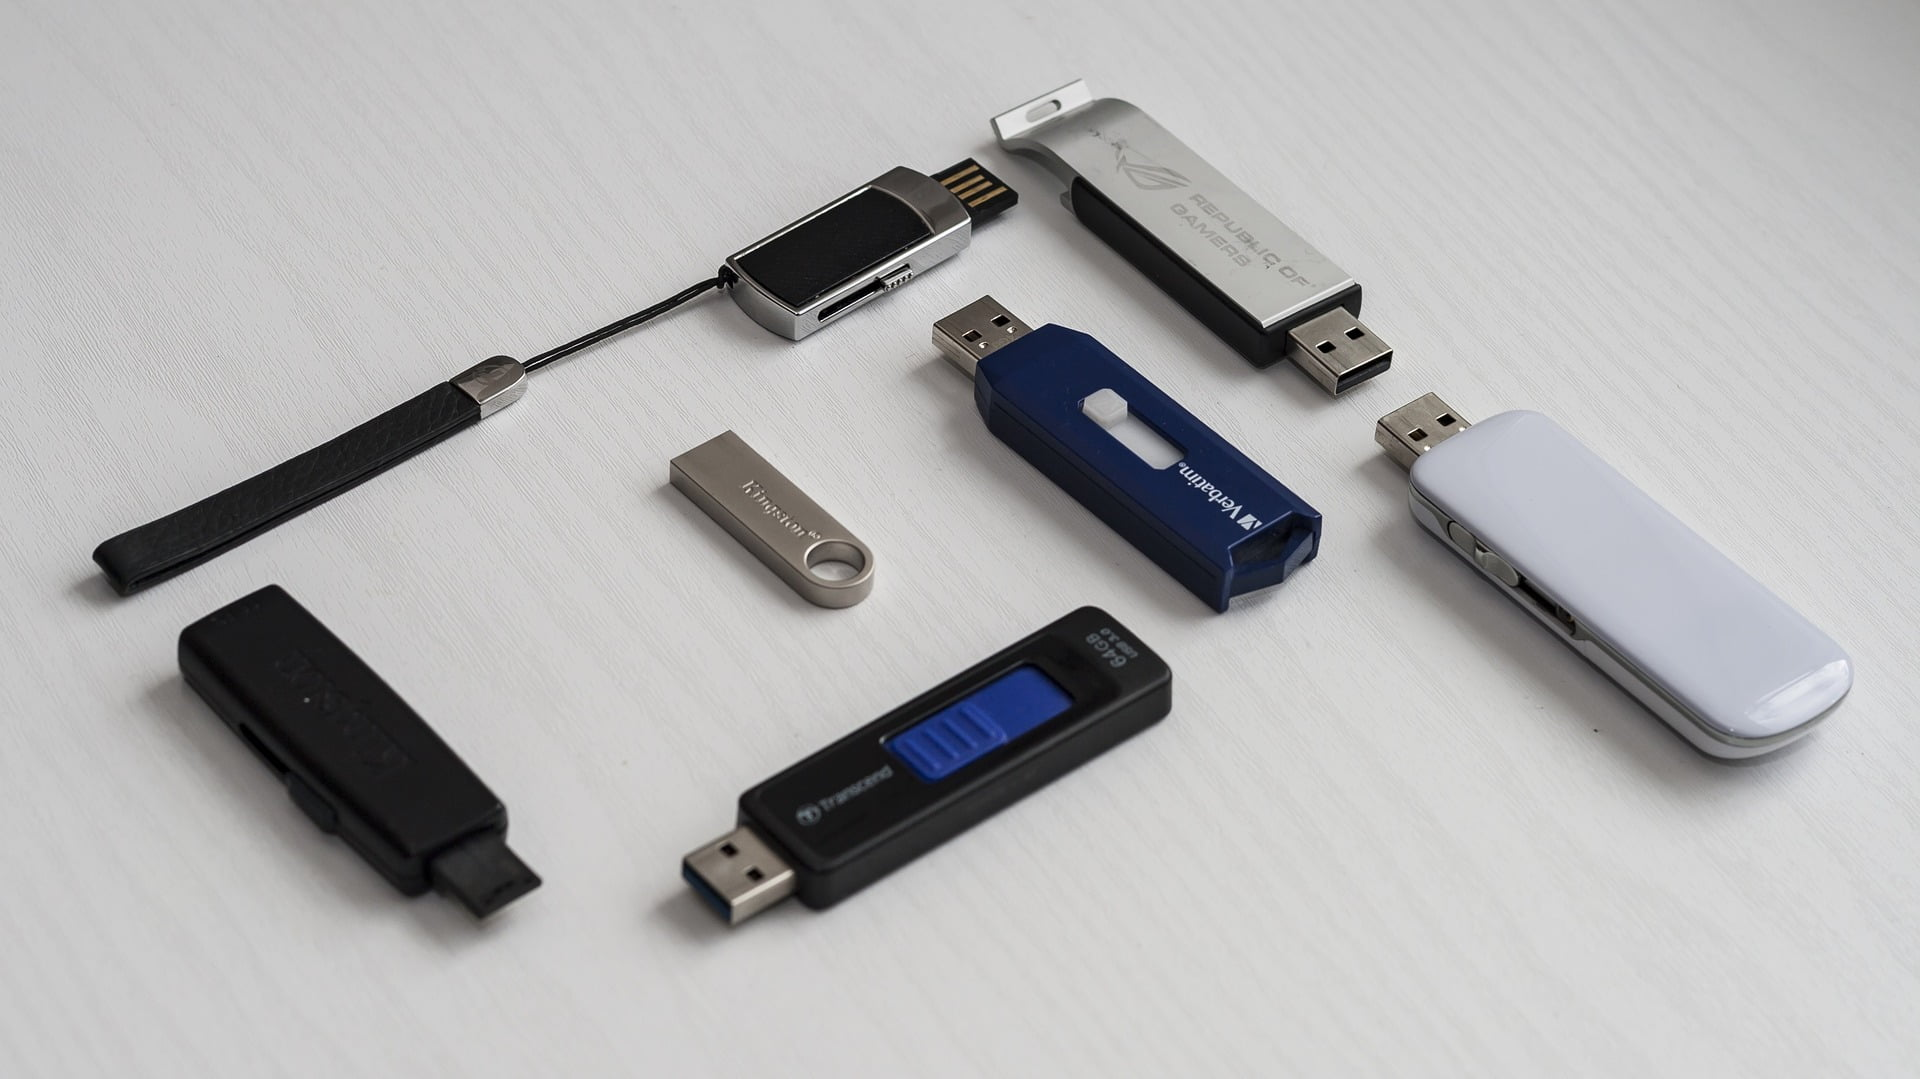 memory flash sticks